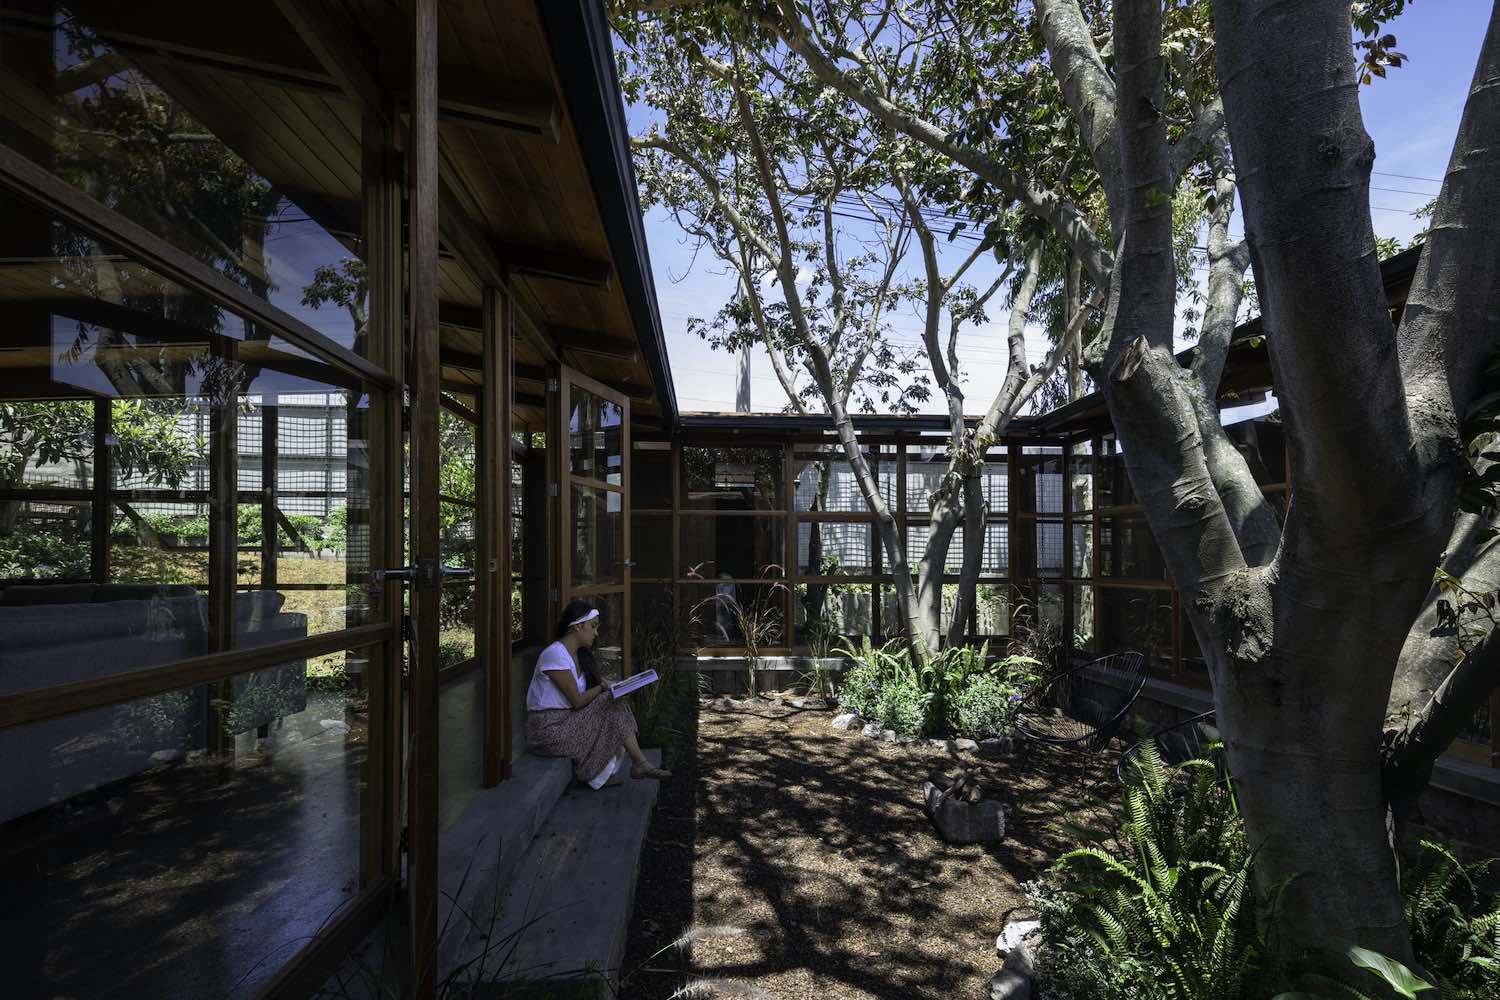 a wooden house among trees in Quito